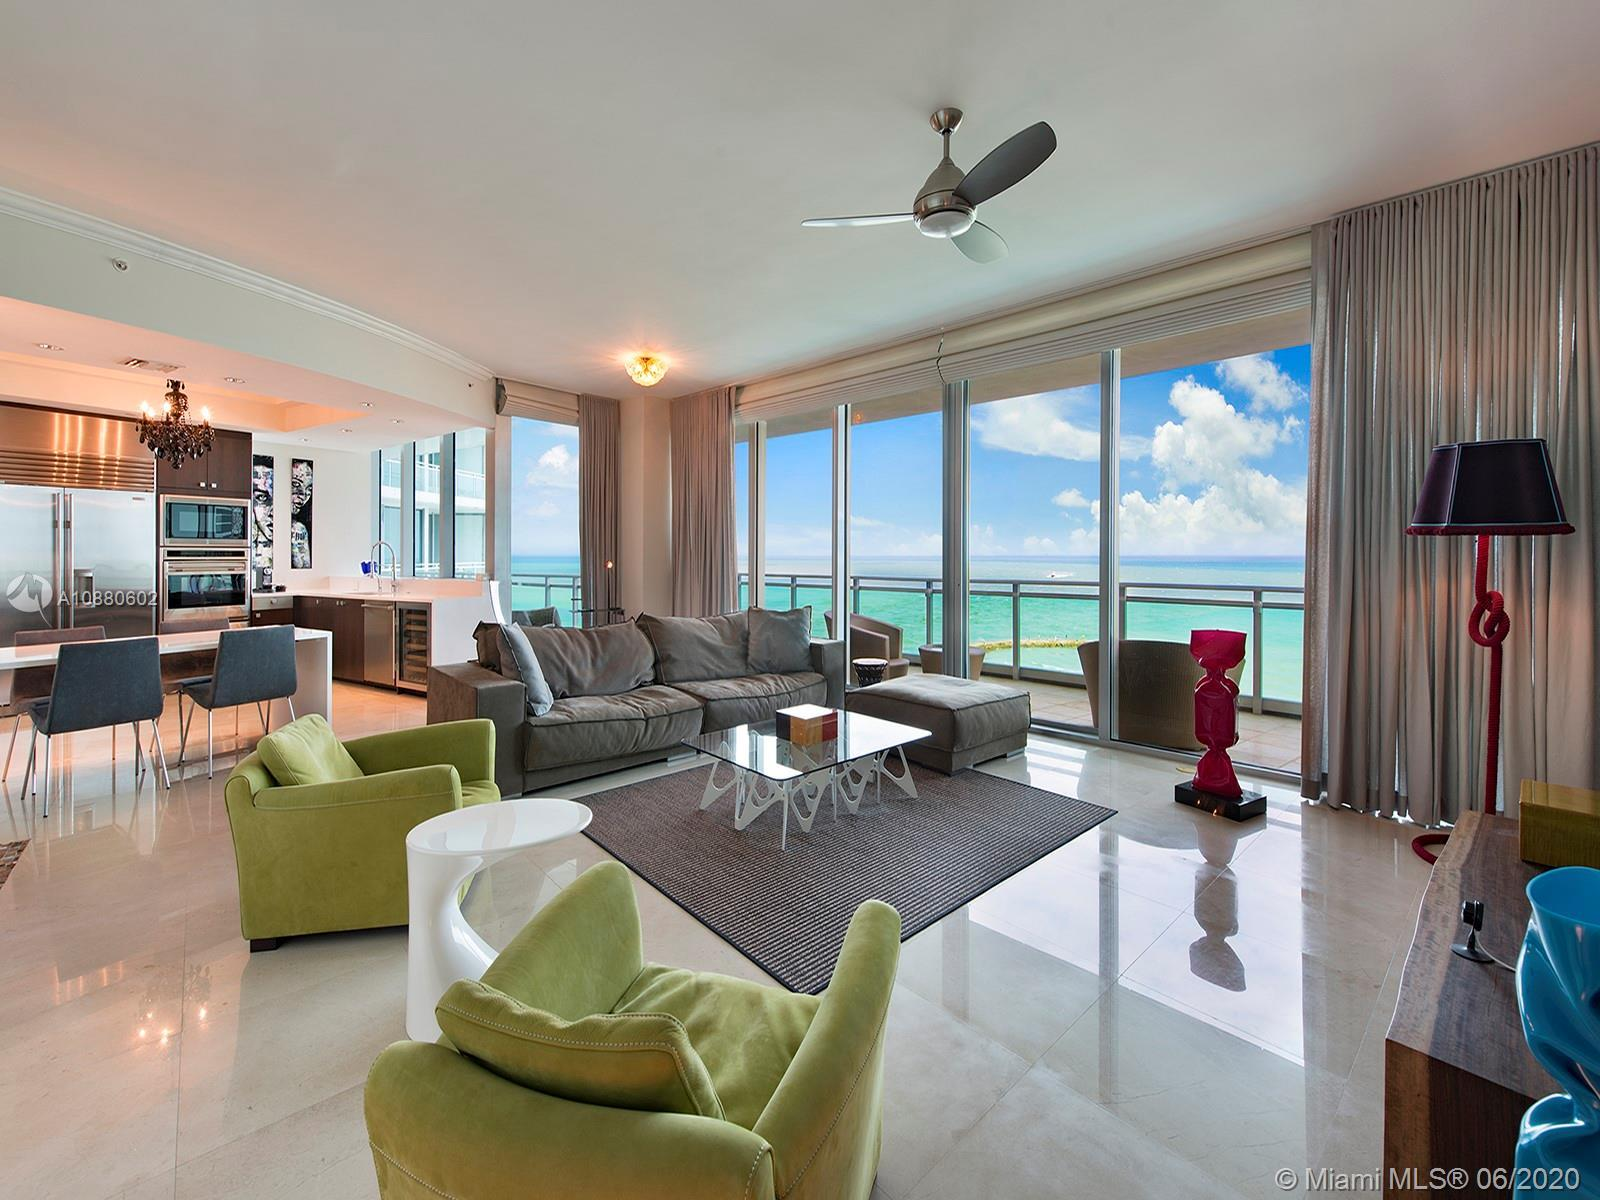 Enjoy direct oceanfront sunrise views from this sleek 7th floor unit at One Bal Harbour. This spacio